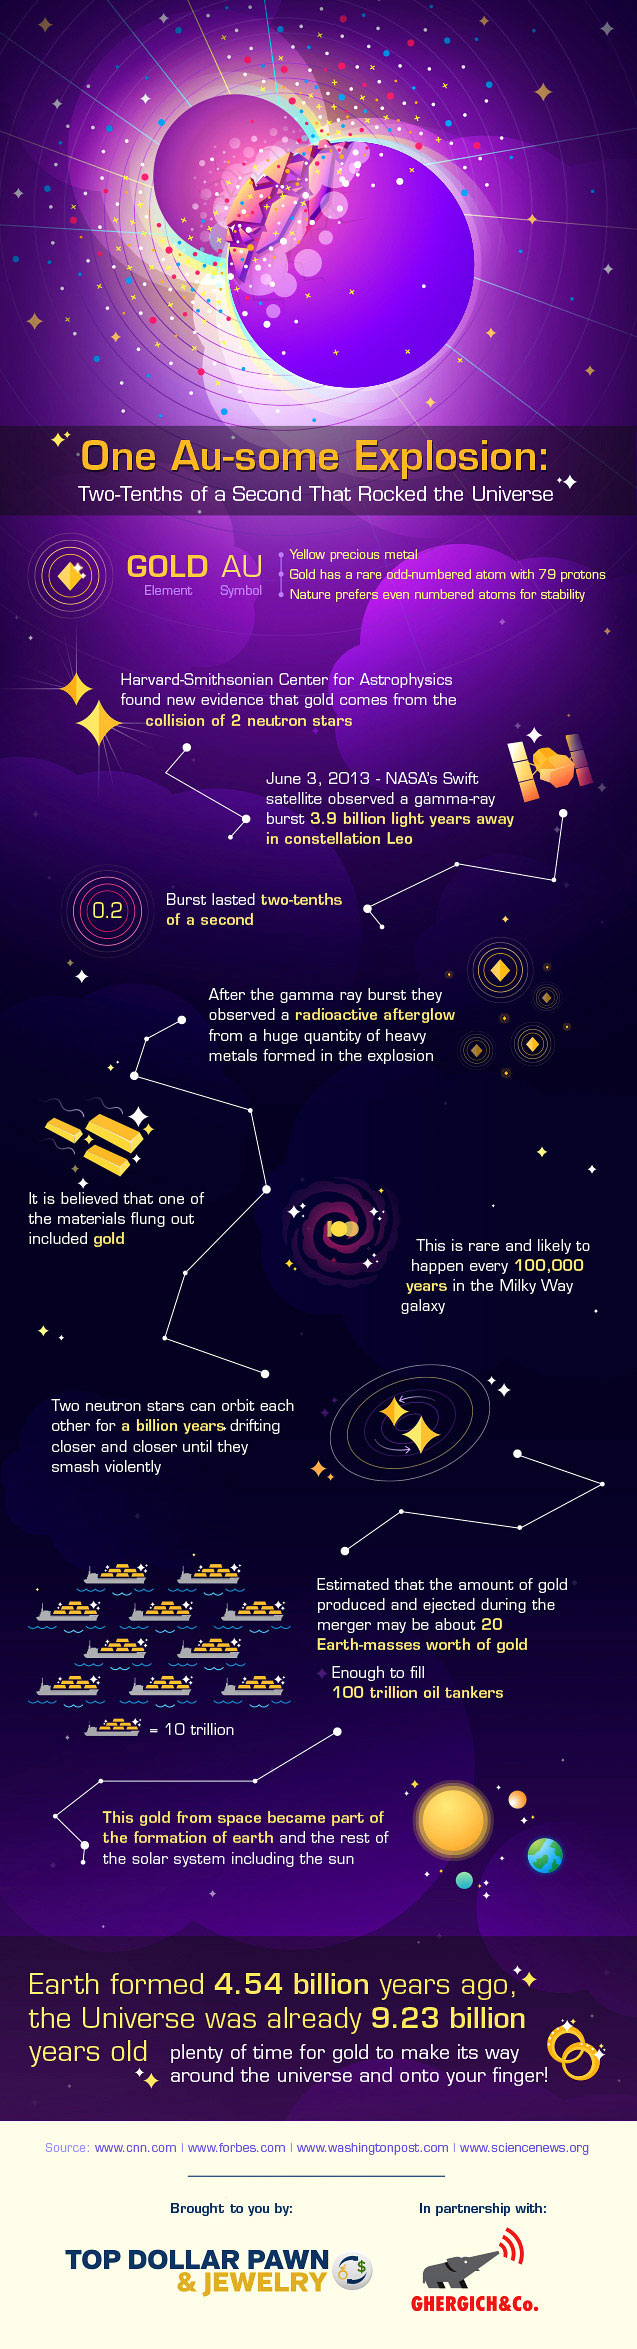 Infographic about gold production in neutron star collisions